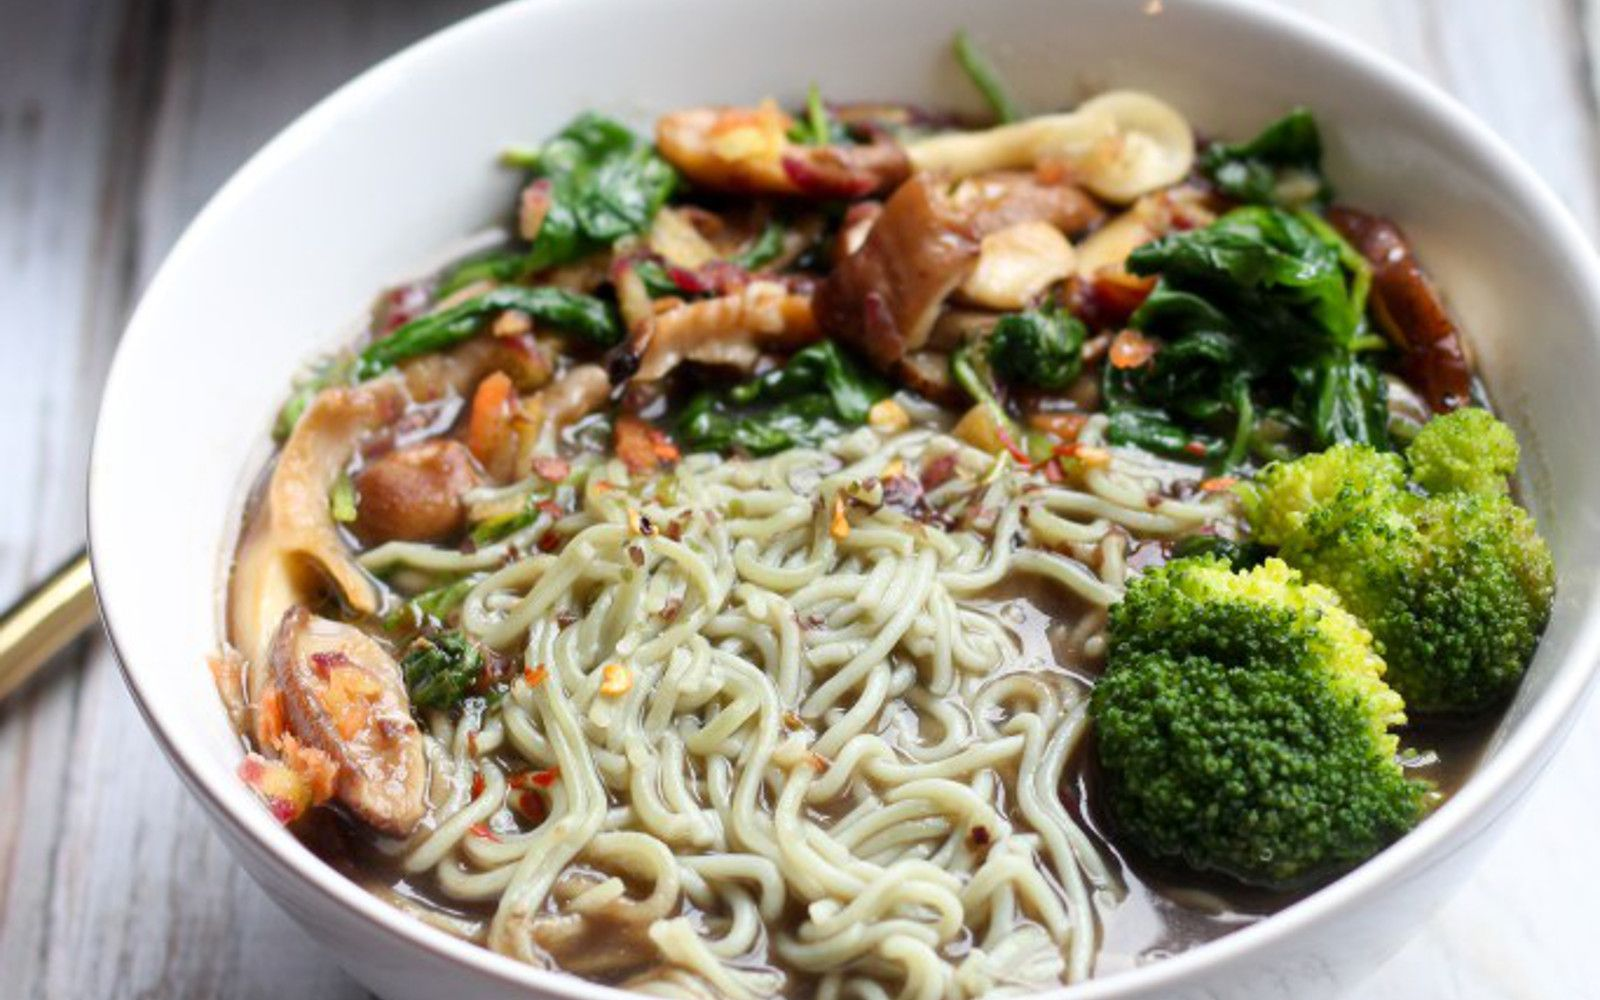 <p>This savory noodle soup is chock-full of fresh vegetables and mushrooms, with no short supply of noodles. This ten-minute meal is exactly what you need on chilly days! </p>